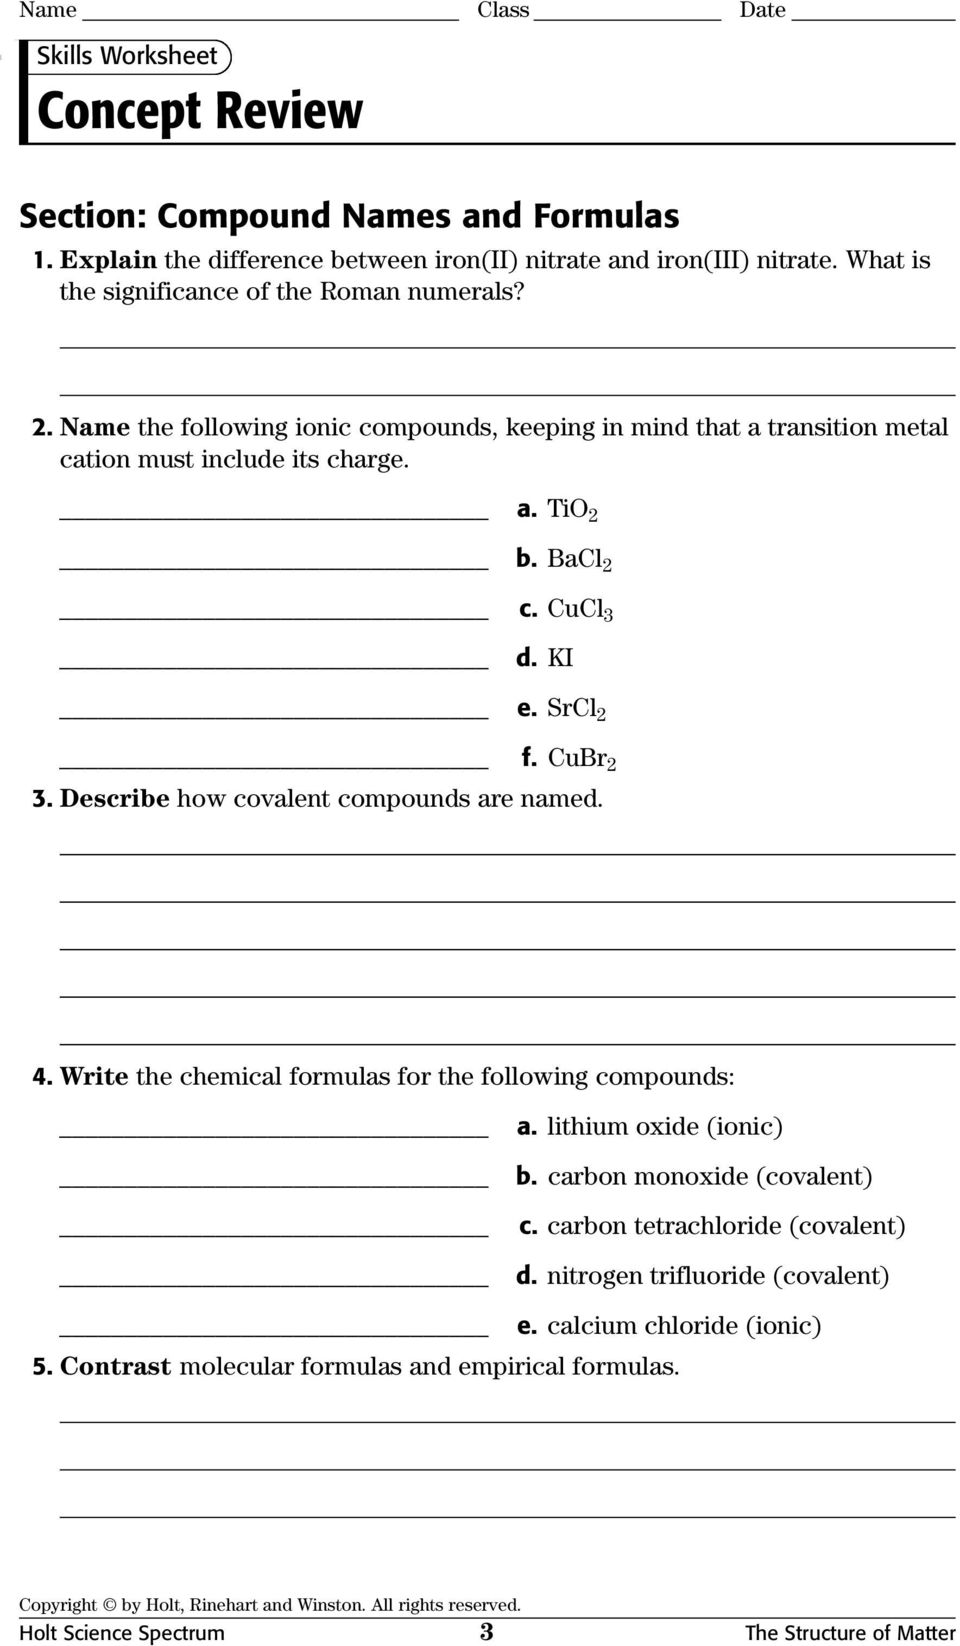 Skills worksheet concept review writing net ionic equations kidz physical science concept review worksheets with answer keys pdf ibookread PDF